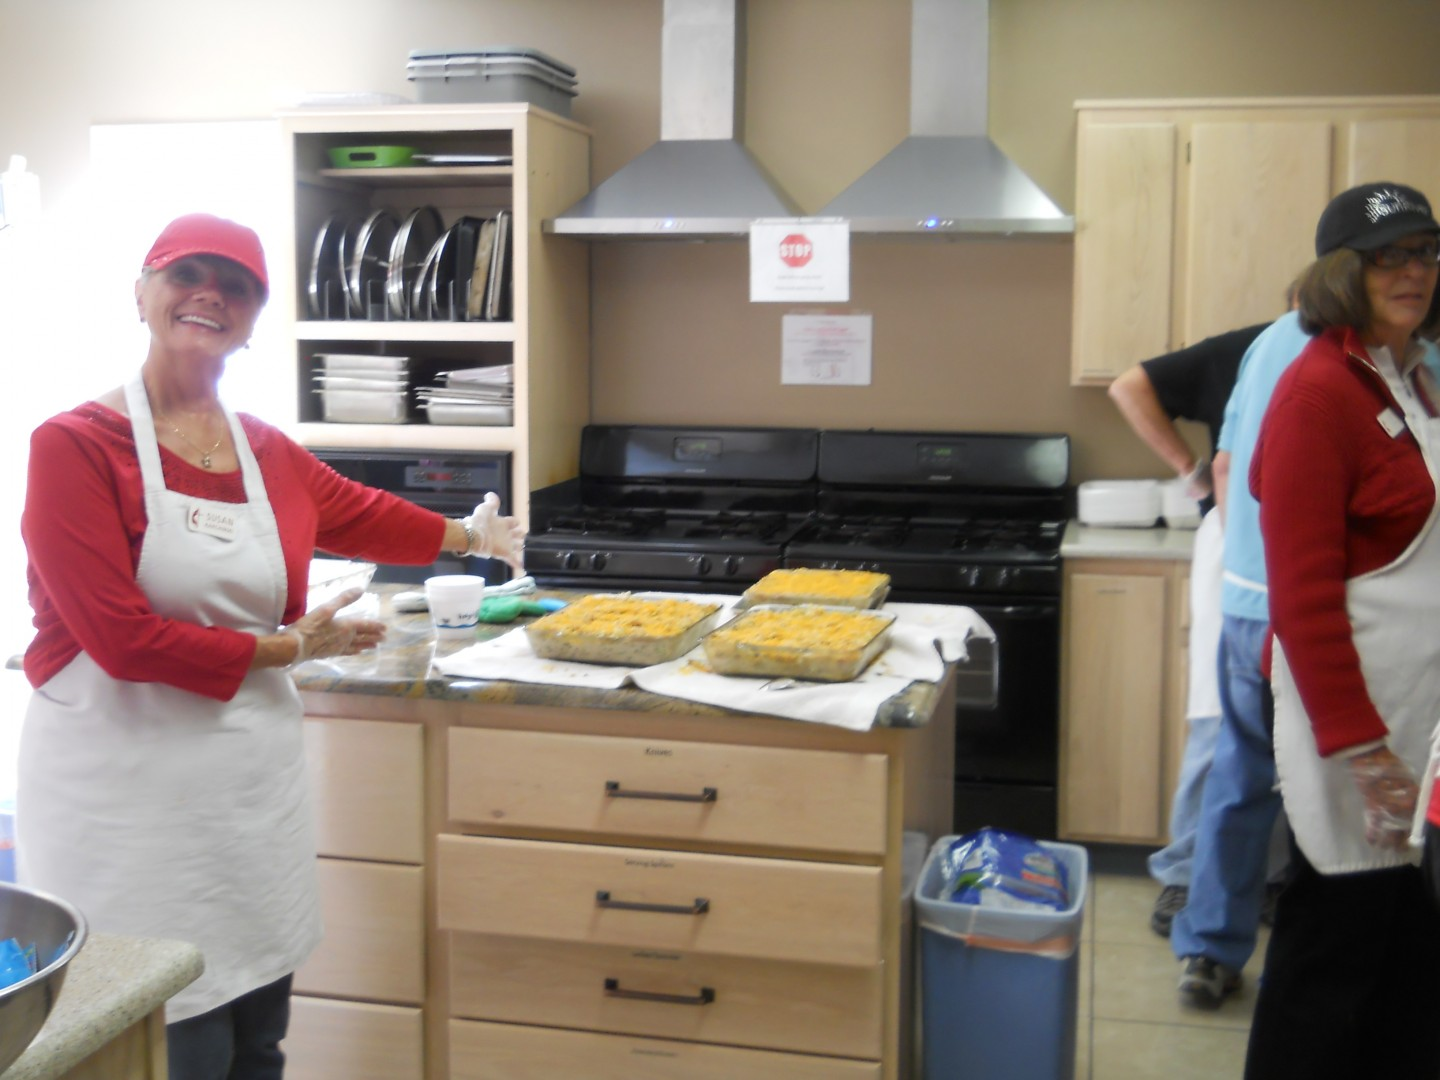 Volunteers at the community soup kitchen at The Grace Episcopal Church, St. George, Utah, Feb. 14, 2013 | Photo by Aspen Stoddard, St. George News